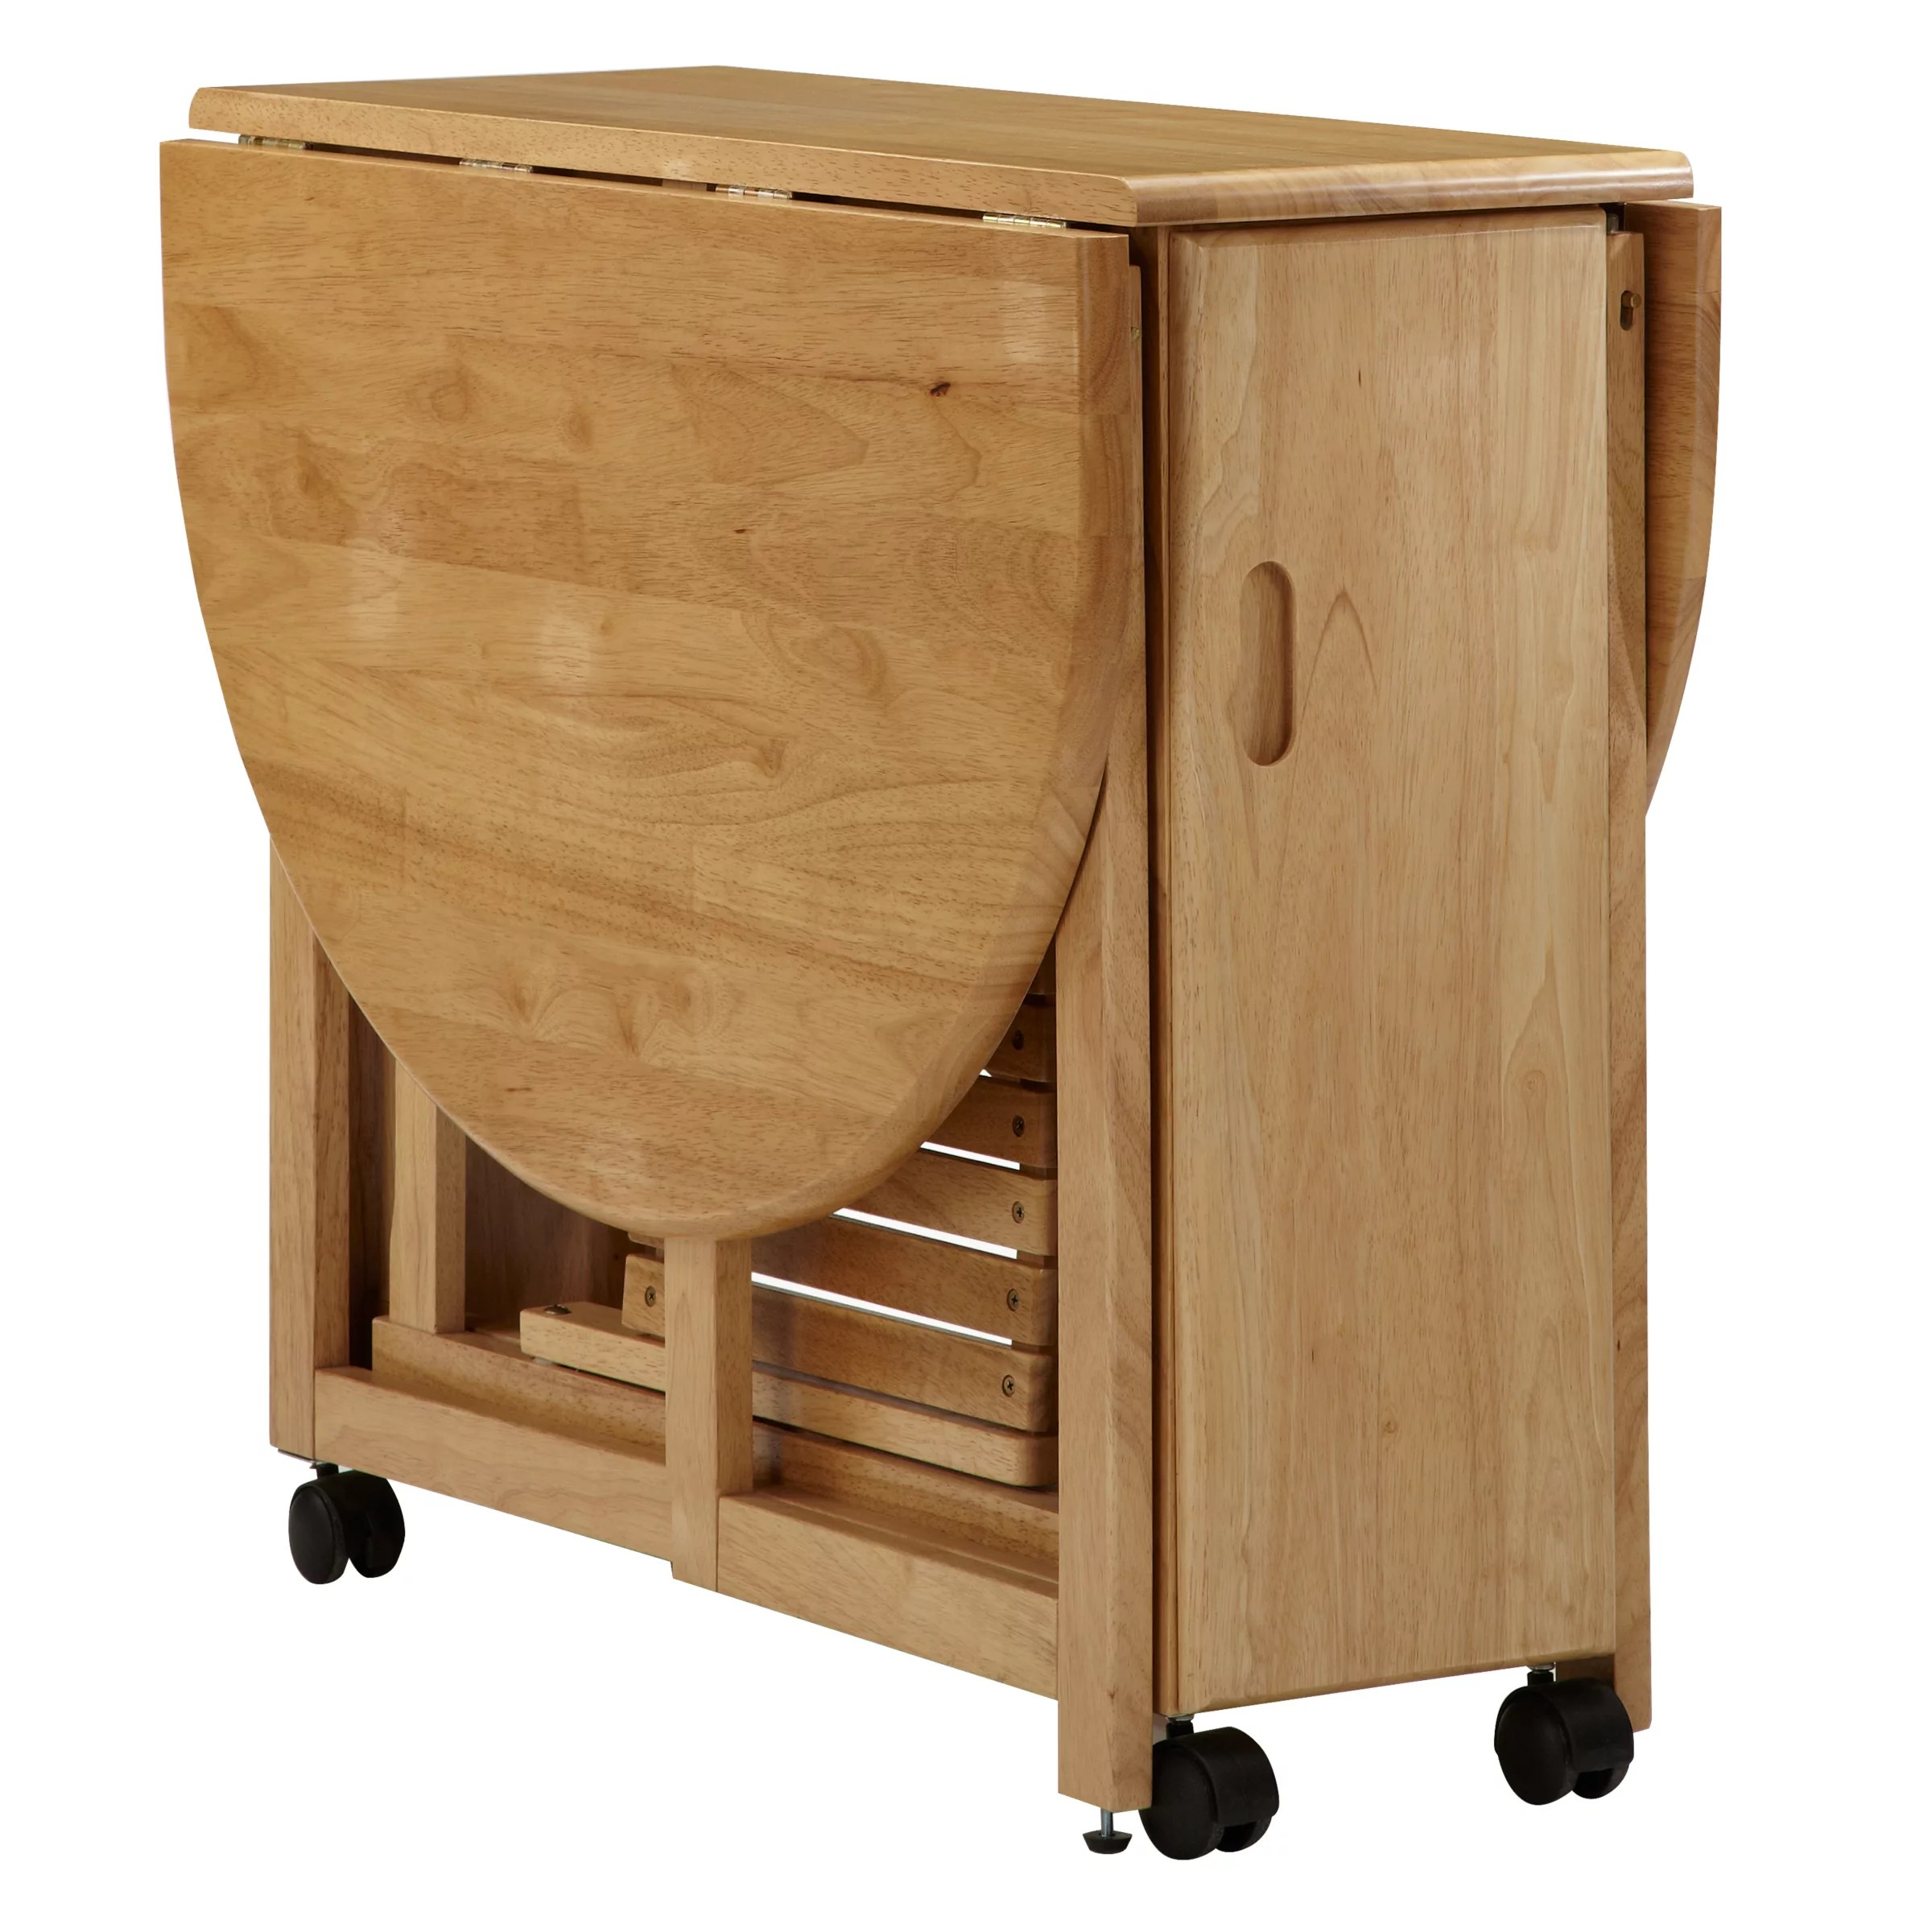 Fold Up Wooden Tables Butterfly Folding Table Ikea Nazarm